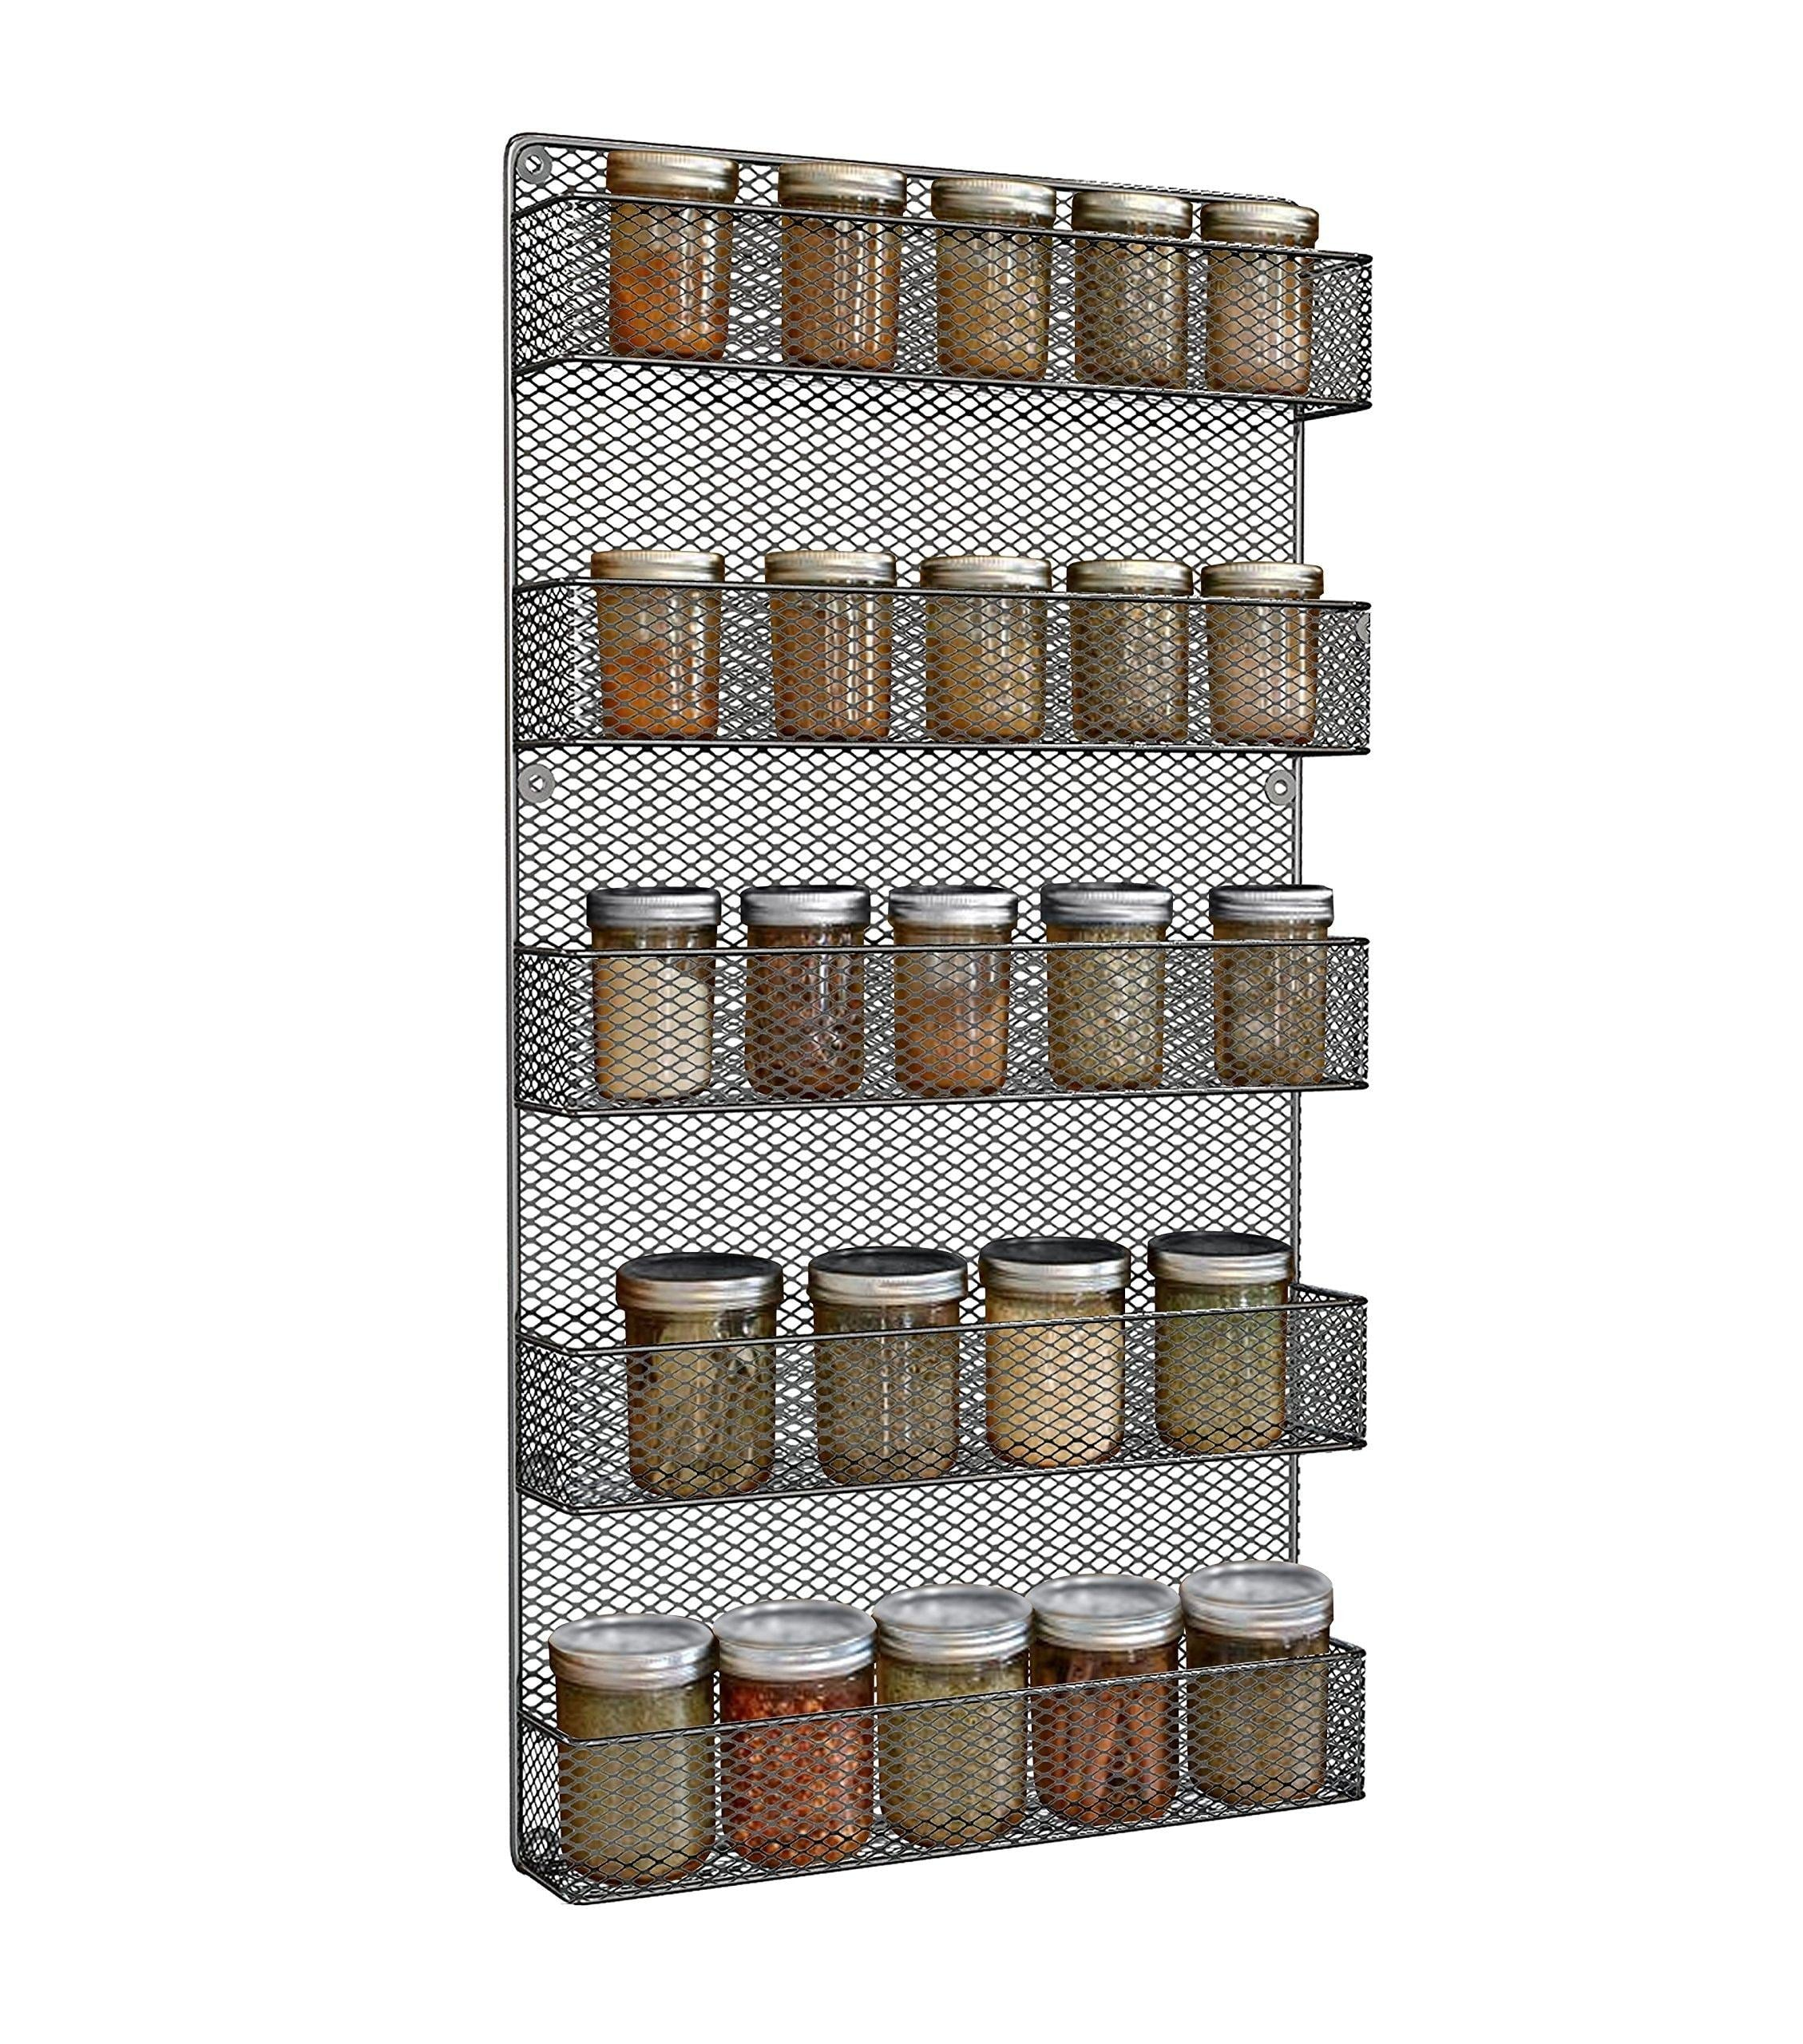 Great spice rack wall mount spice rack organizer use as a wall mounted spice rack great storage capacity for kitchen spicy shelf the best spice rack 5 tier shelves